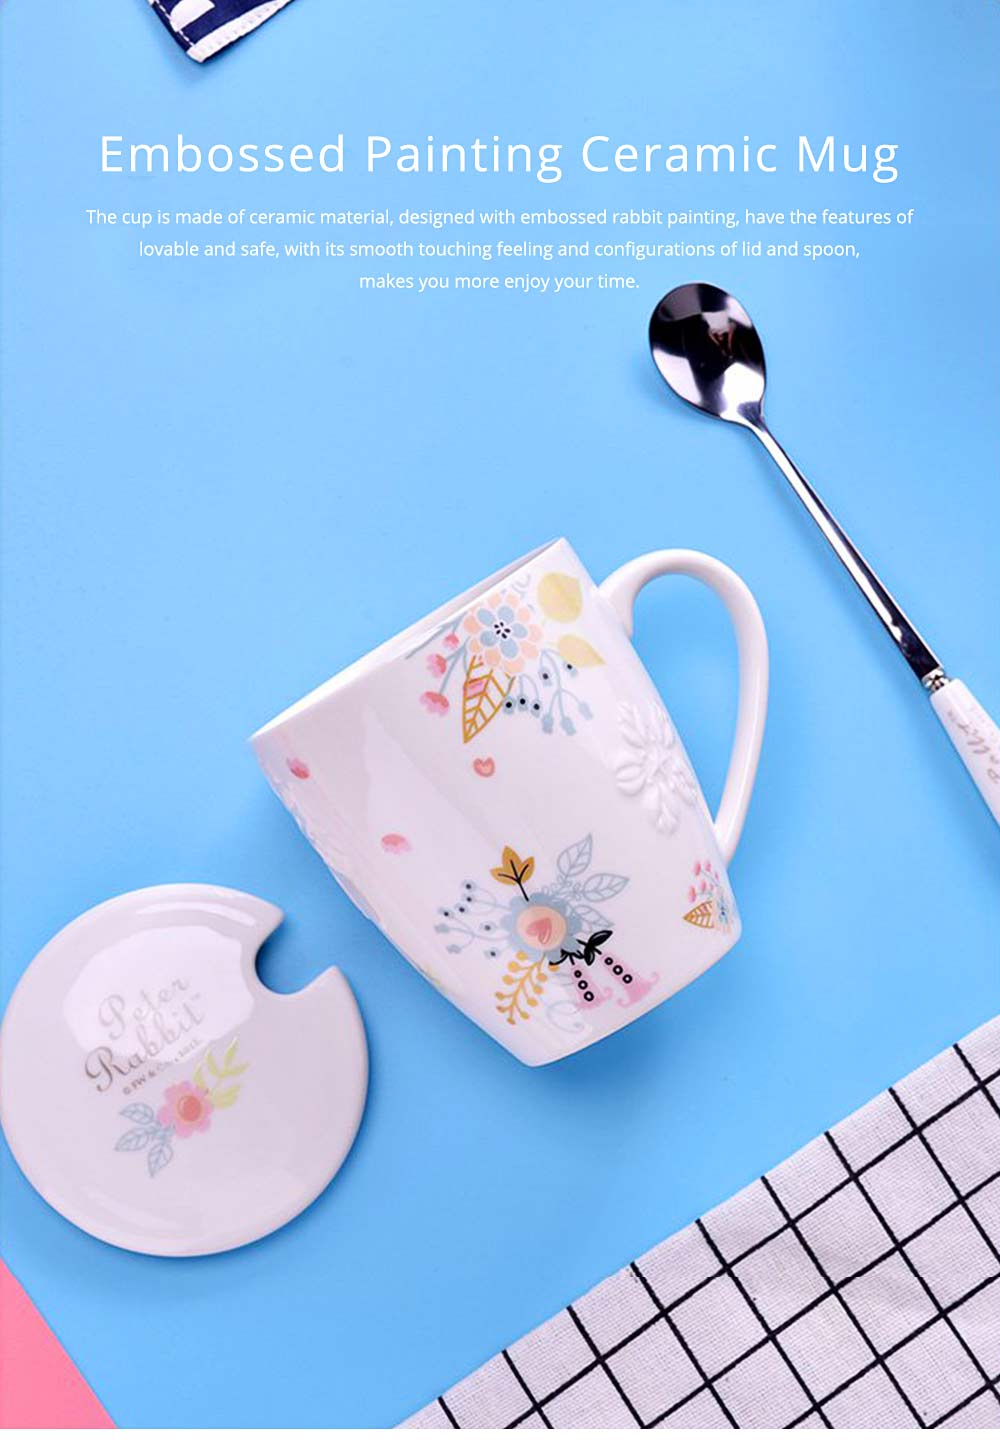 Ceramic Mug Embossed Painting with Cover Spoon for Office Water Coffee Porcelain Cup 0